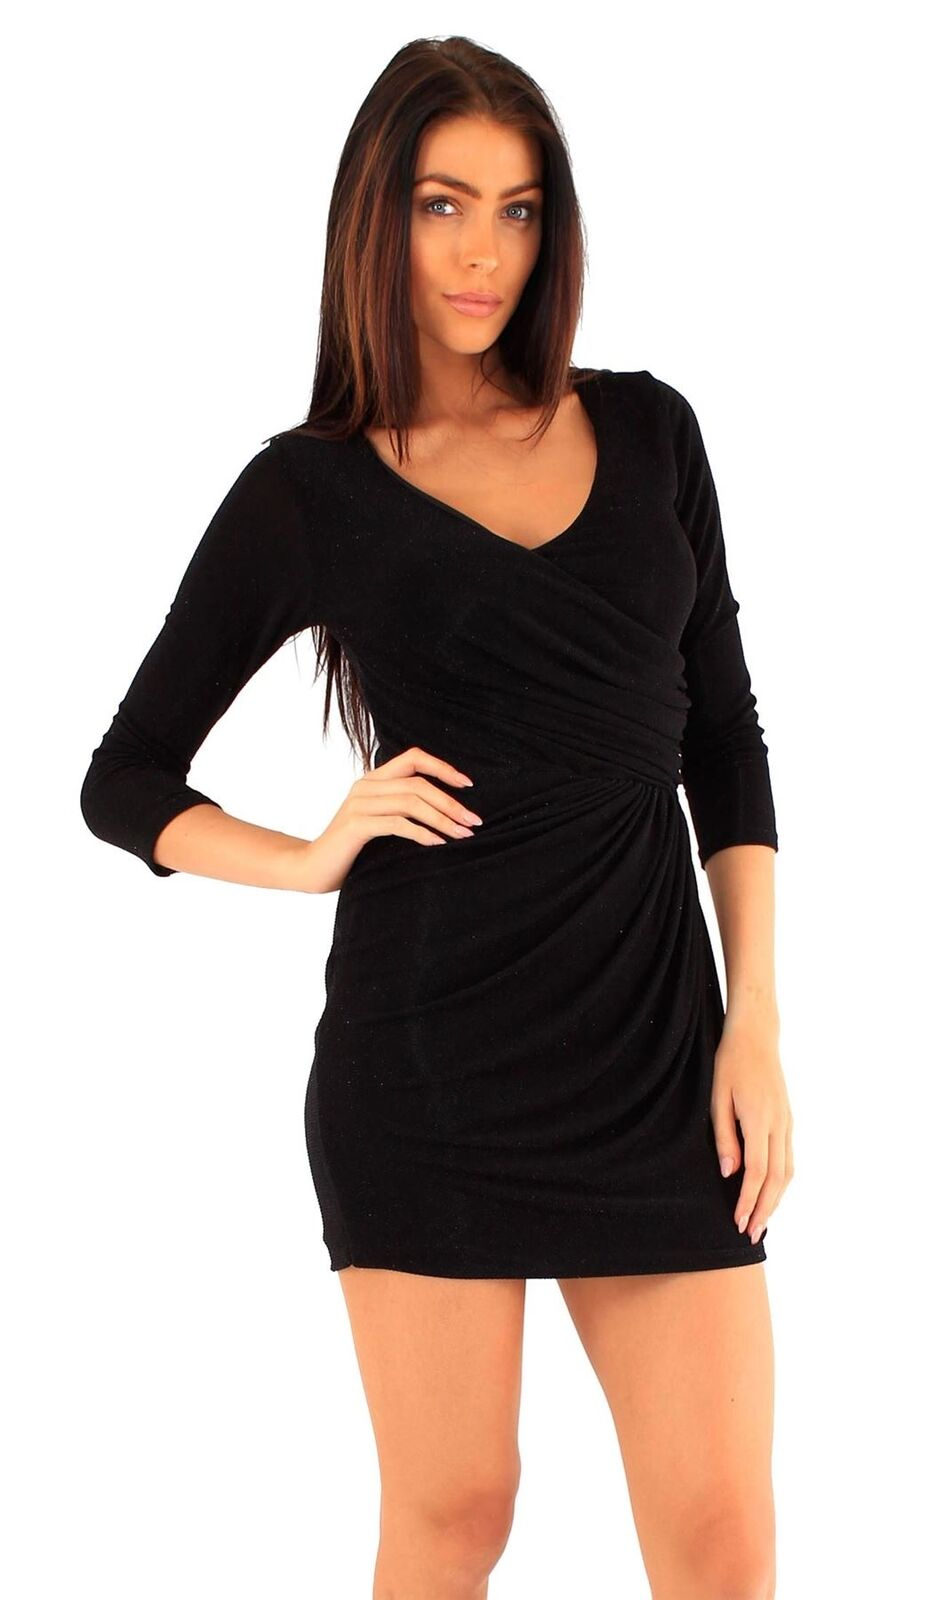 696ea5c277f26 Womens Sparkle Warp Over Going out ¾ Sleeve Evening Drape Dress 8-14 ...